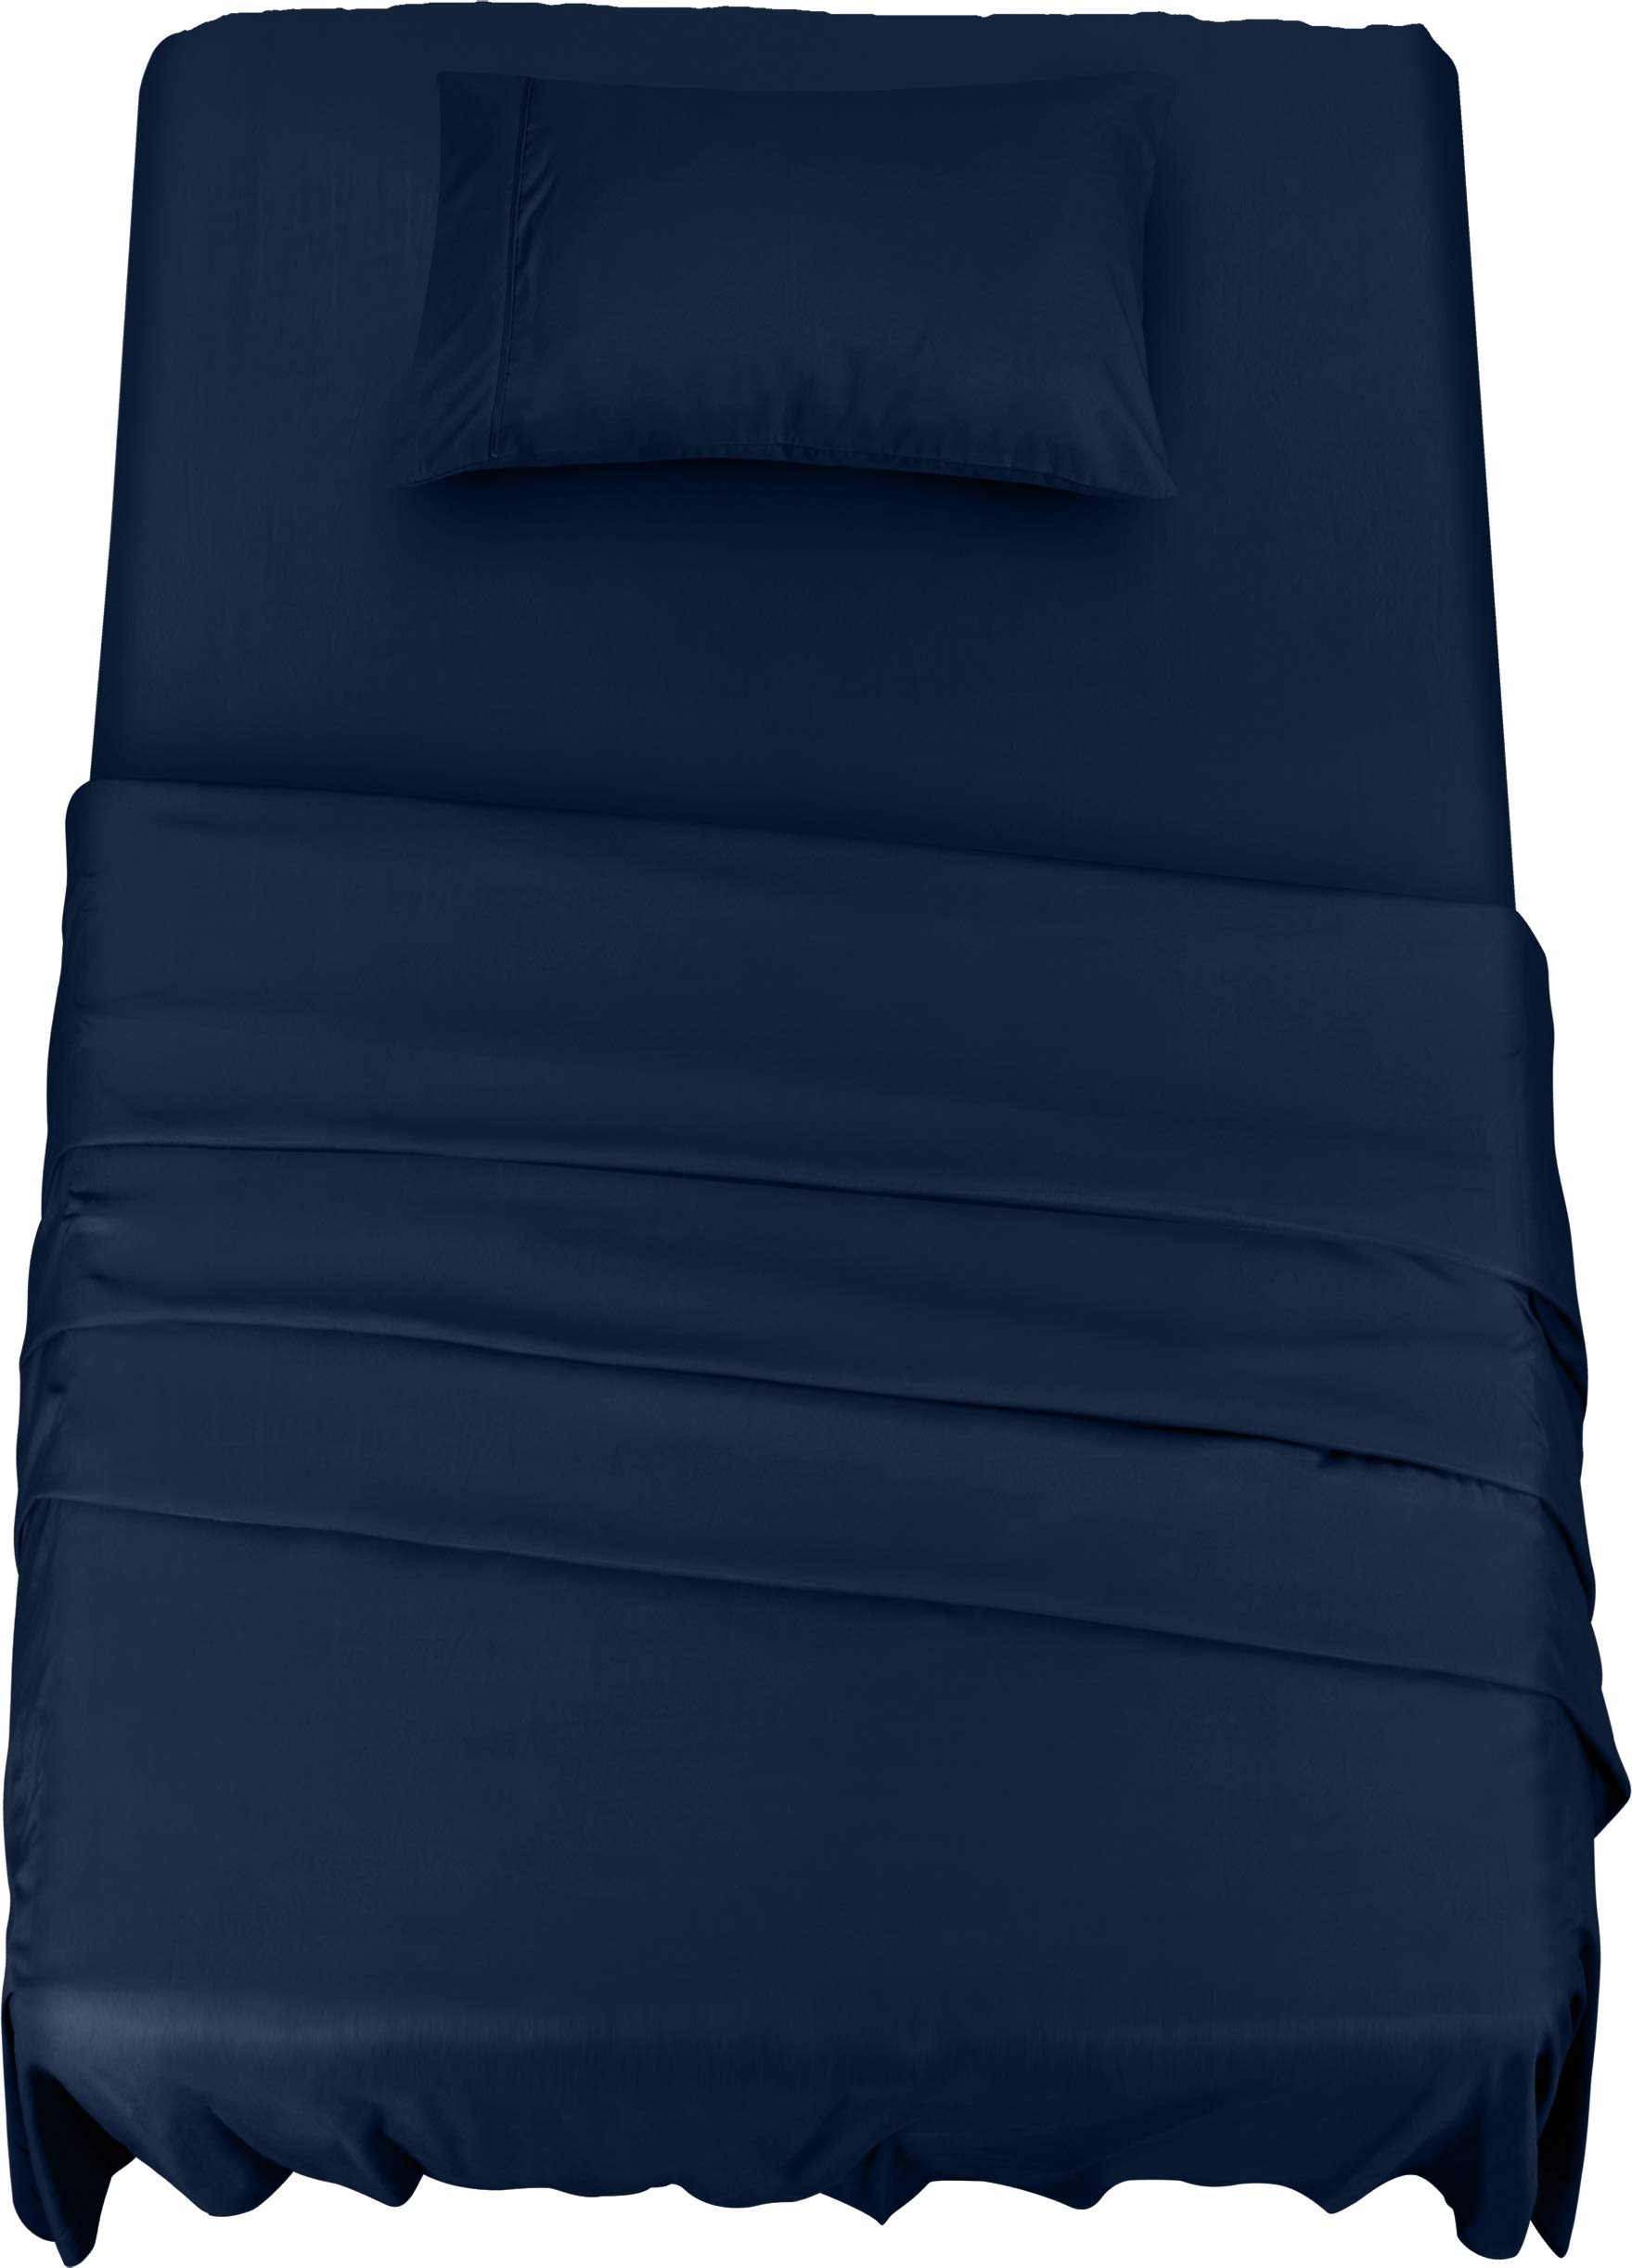 Utopia Bedding Bed Sheet Set - 3 Piece Twin Bedding - Soft Brushed Microfiber Fabric - Shrinkage & Fade Resistant - Easy Care (Twin, Navy)